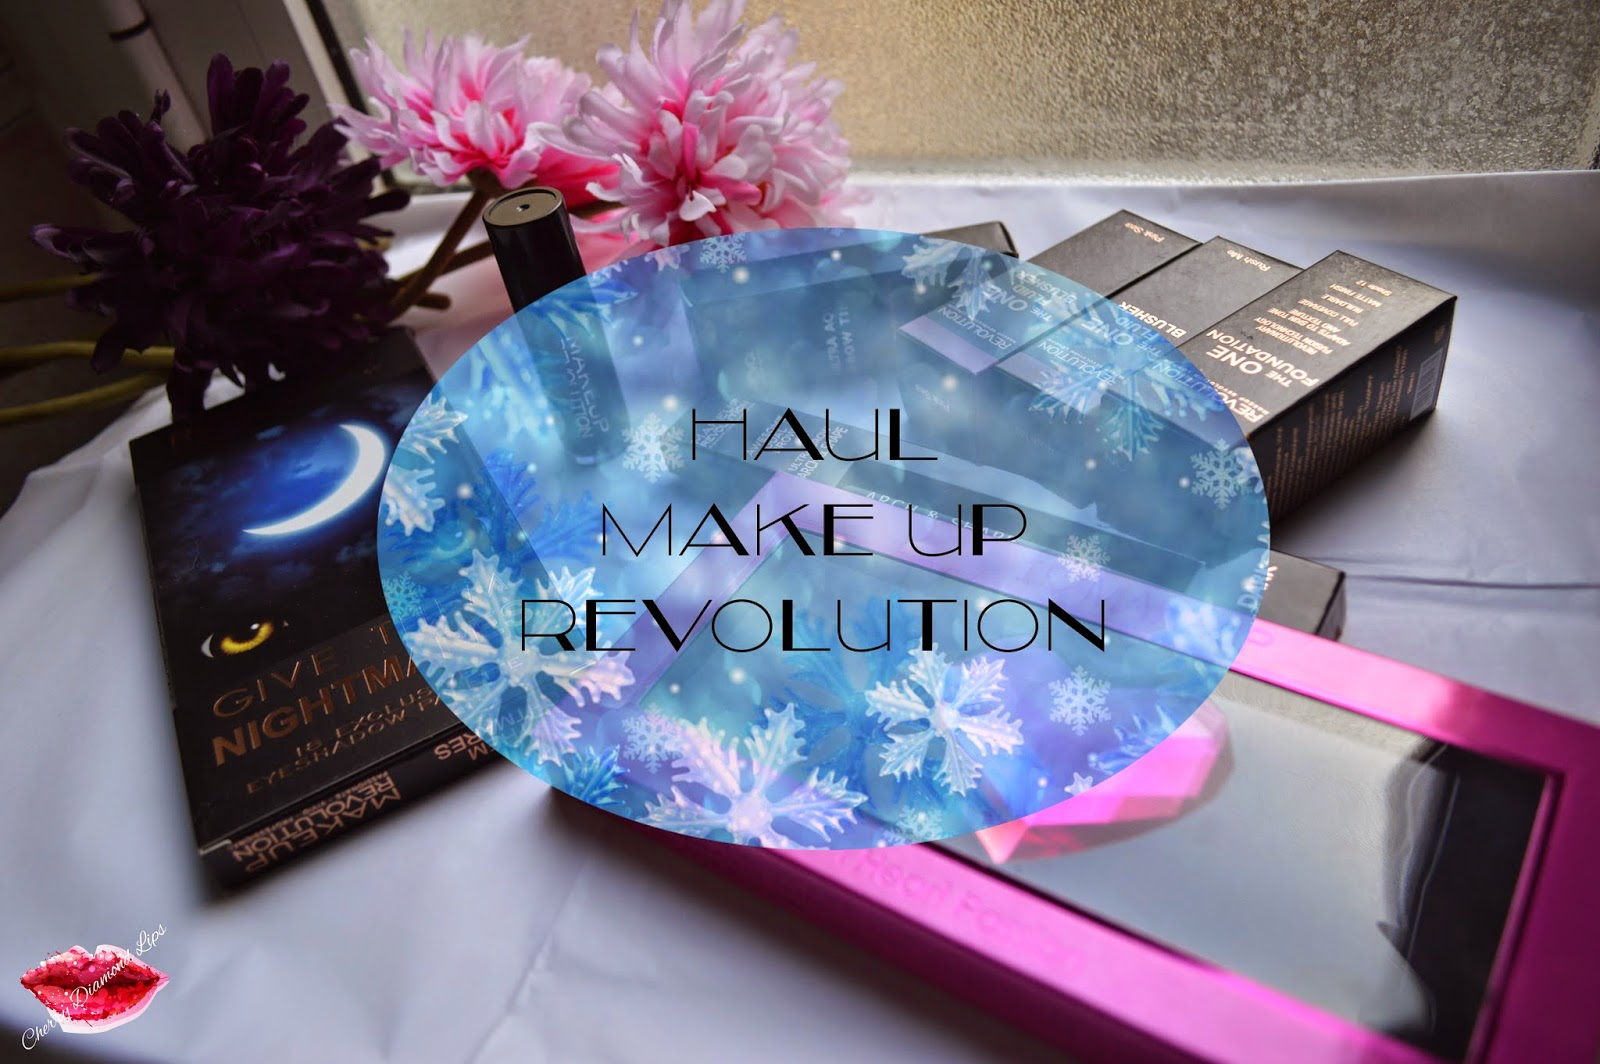 Haul Makeup Revolution